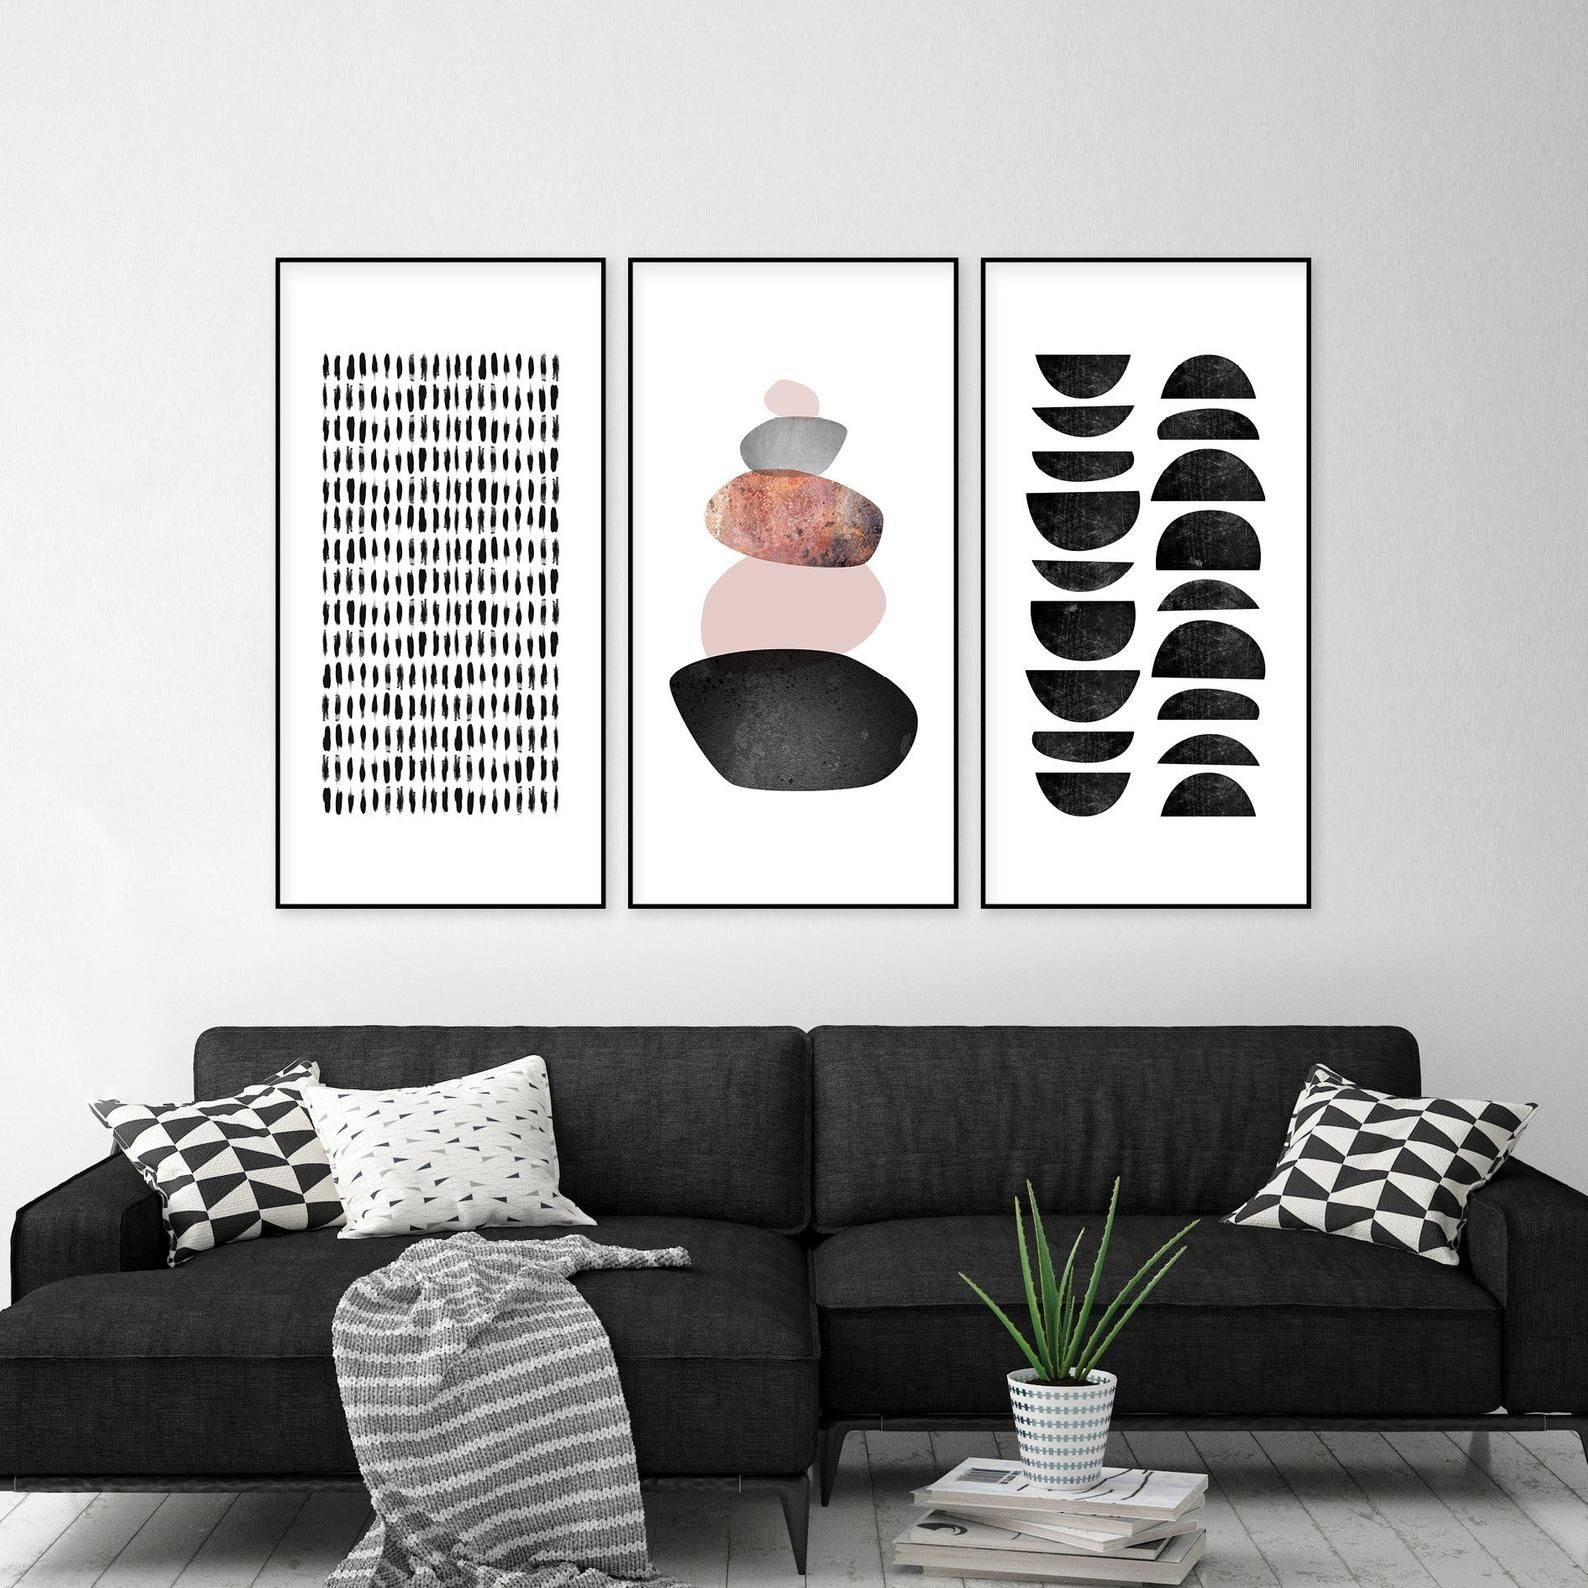 Black White Prints Downloadable Art Set Black White Art 3 Etsy Black And White Prints Downloadable Art Minimalist Prints